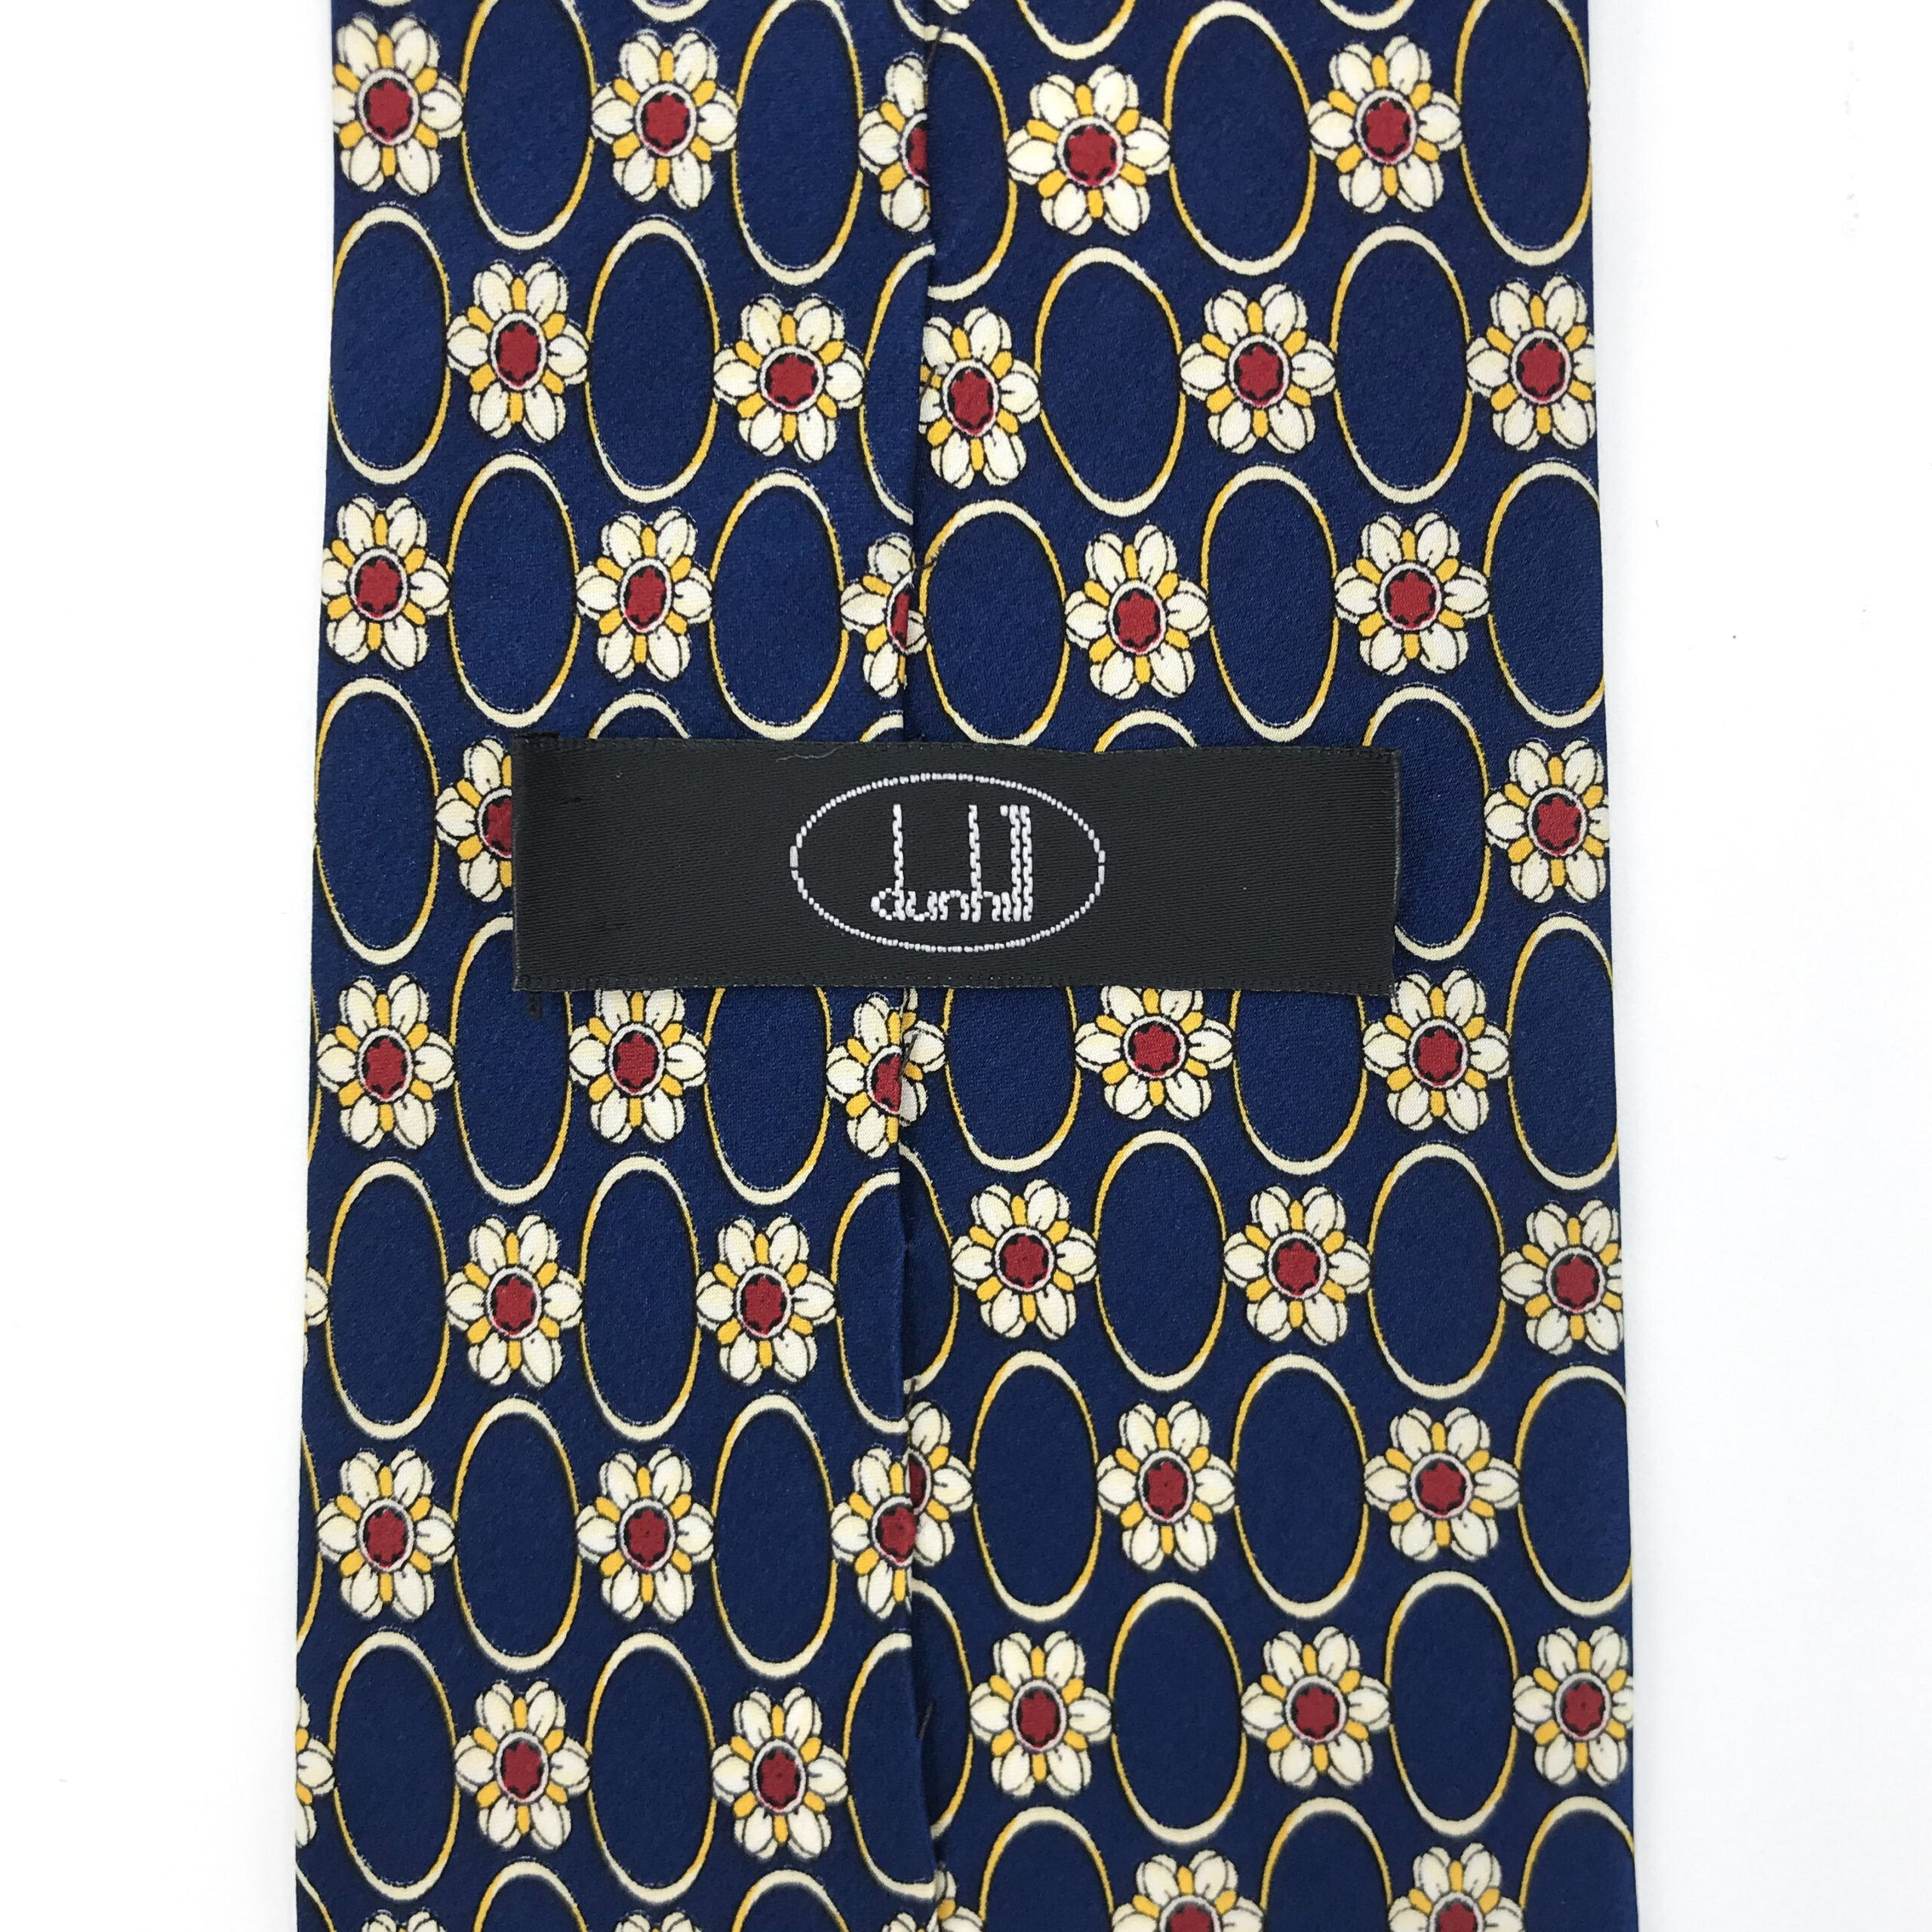 Alfred Dunhill Floral Tie